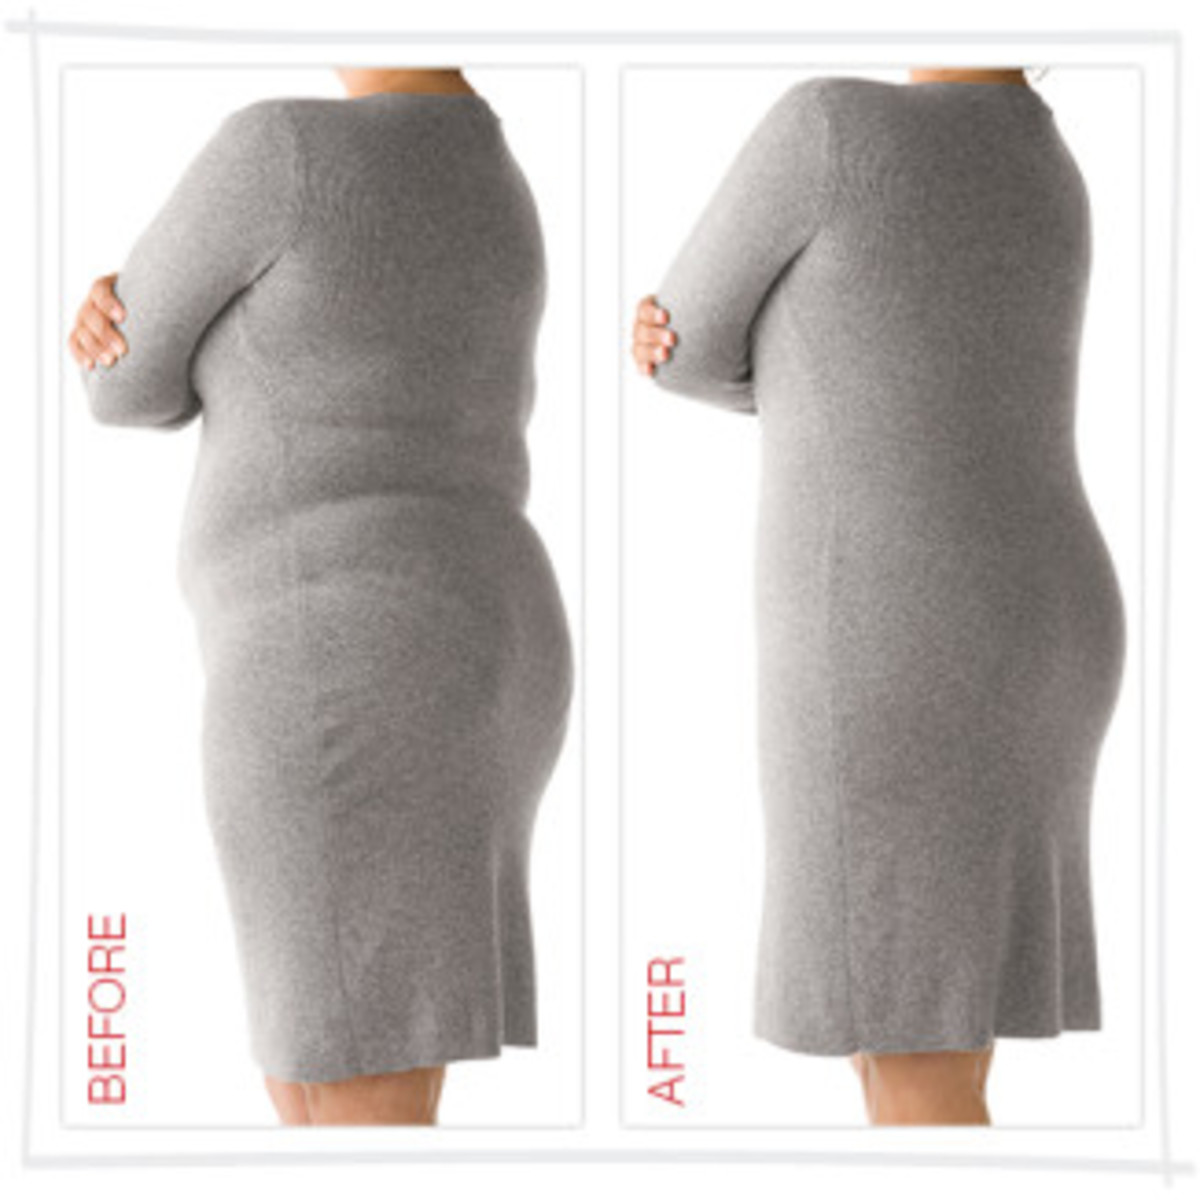 How To Dress For Your Body Type By Healthygurl Hubpages